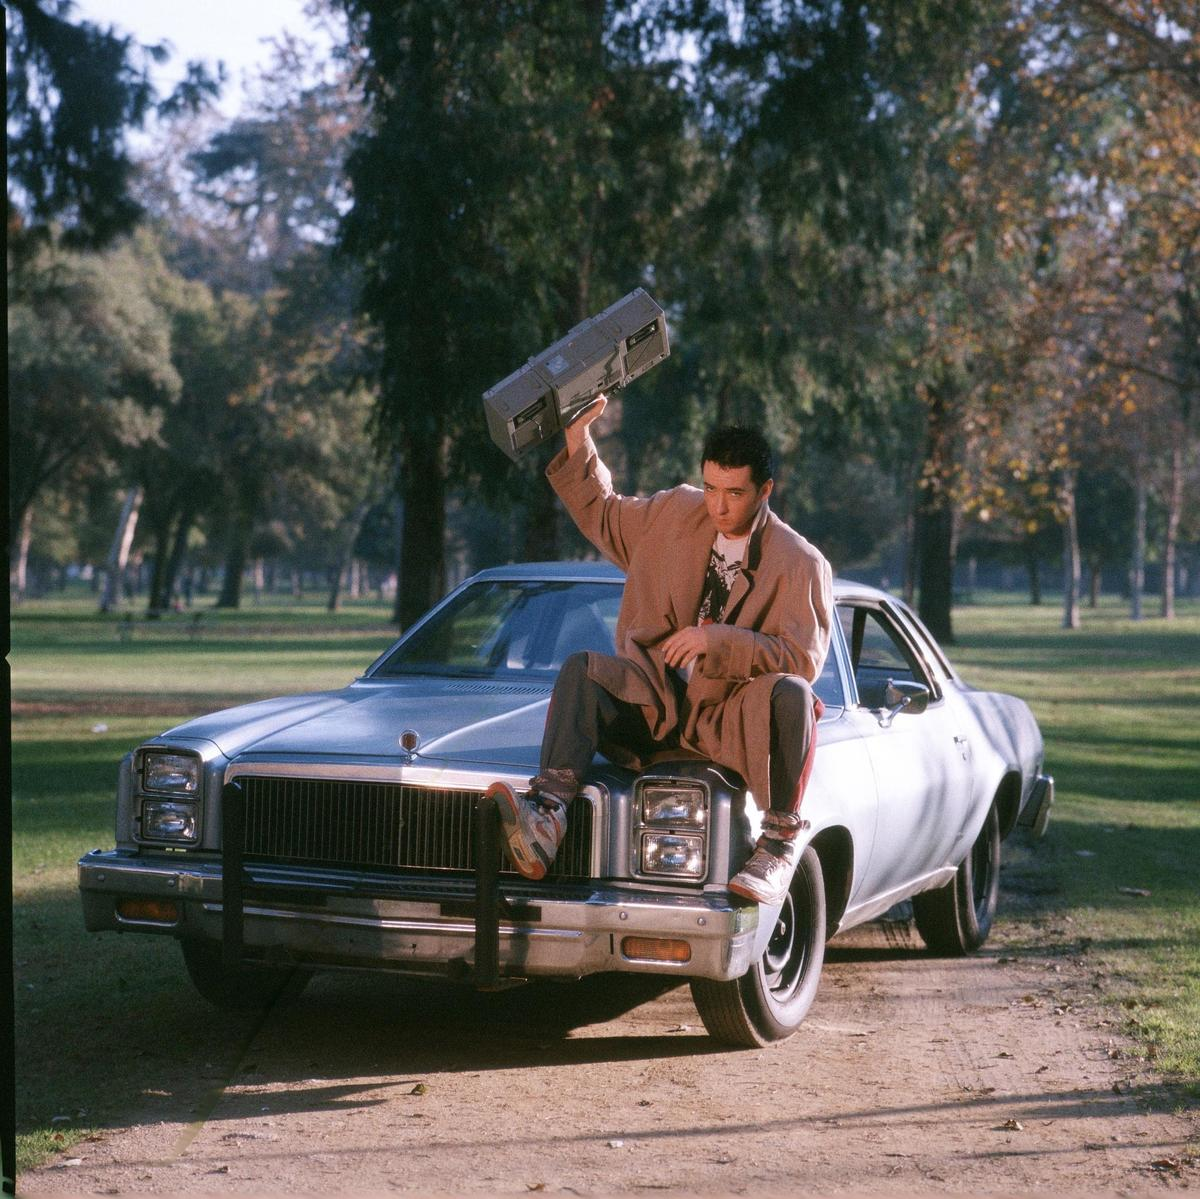 john cusack holding a boombox